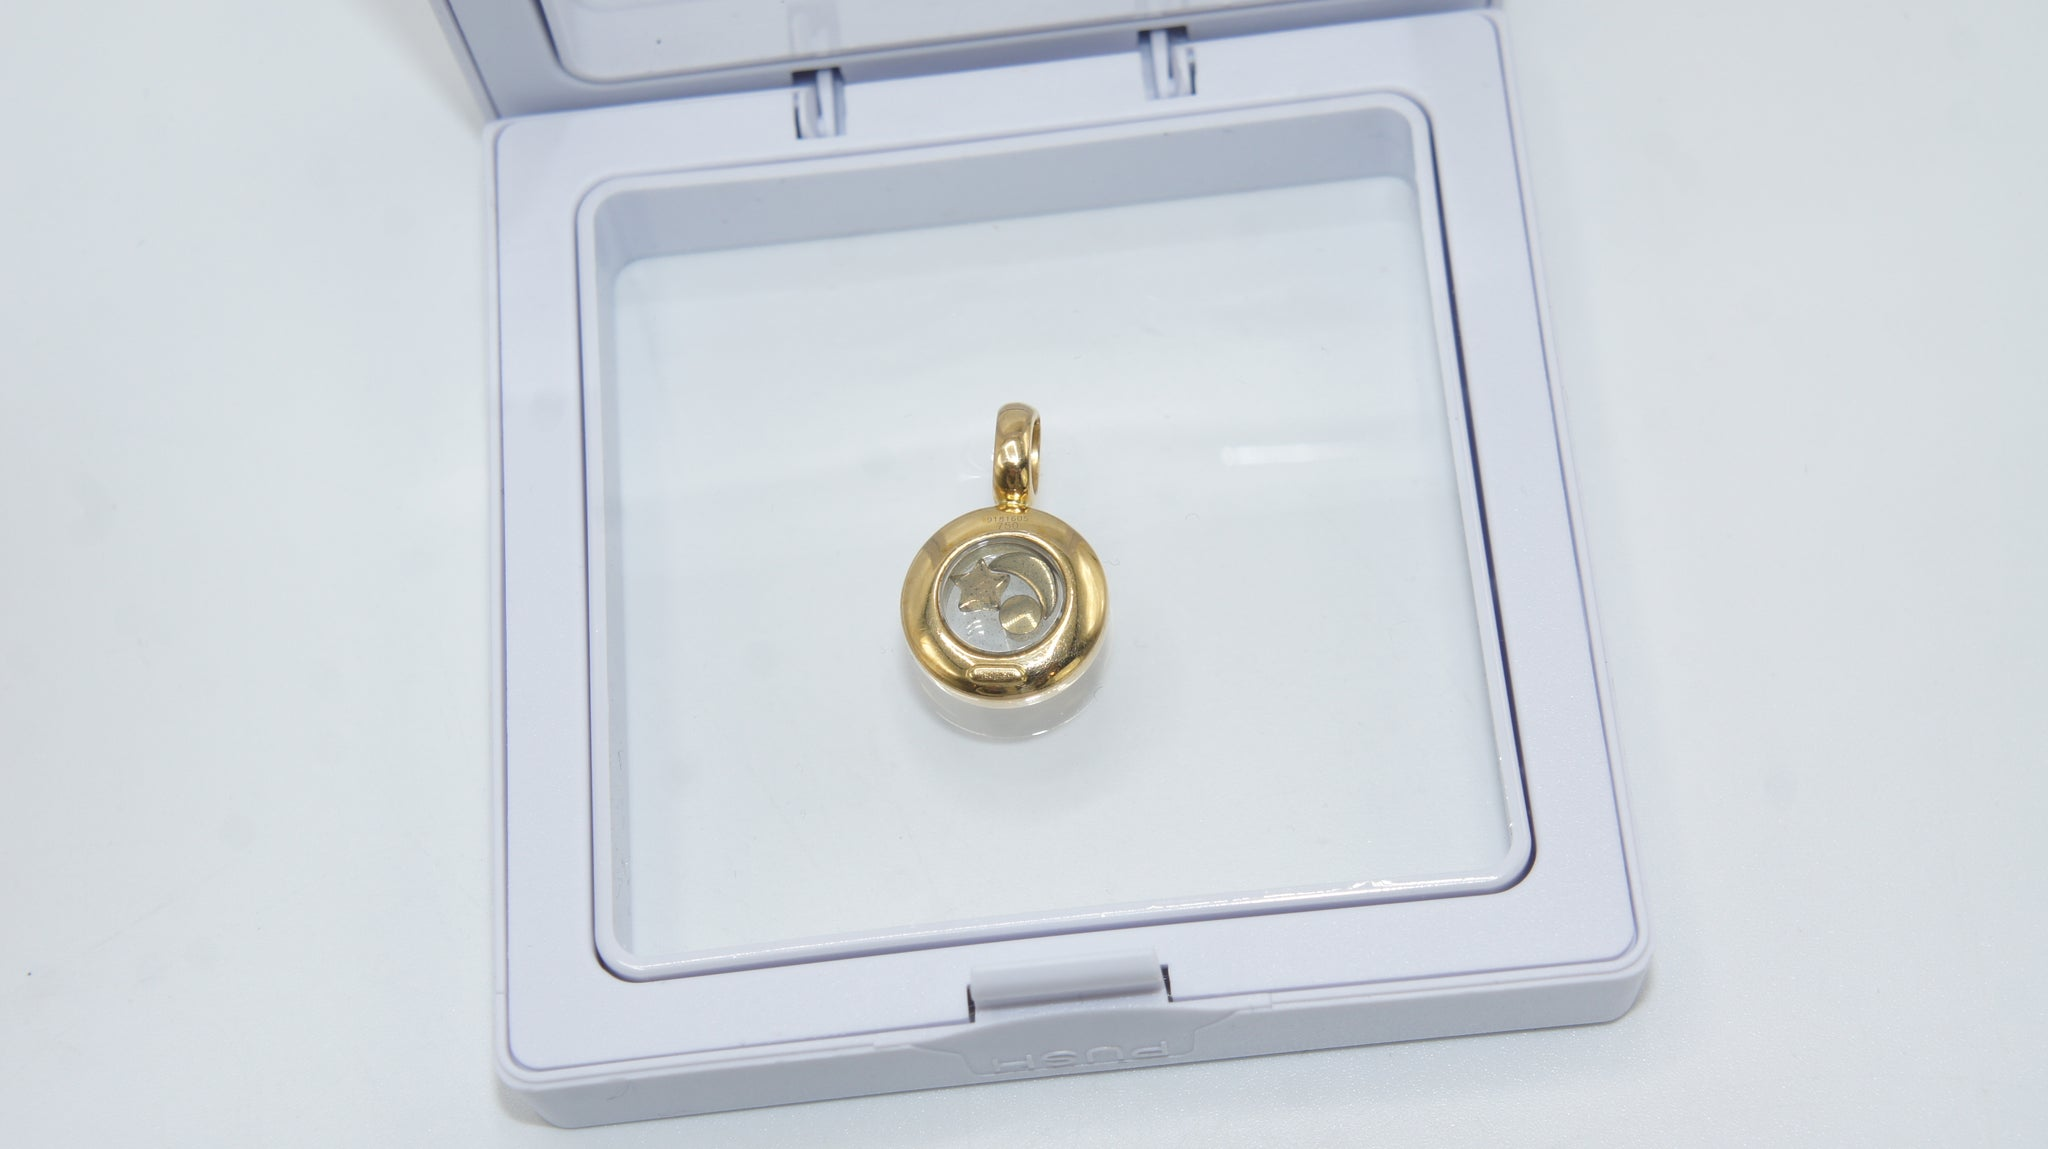 Chopard Pendant - Iconics Preloved Luxury